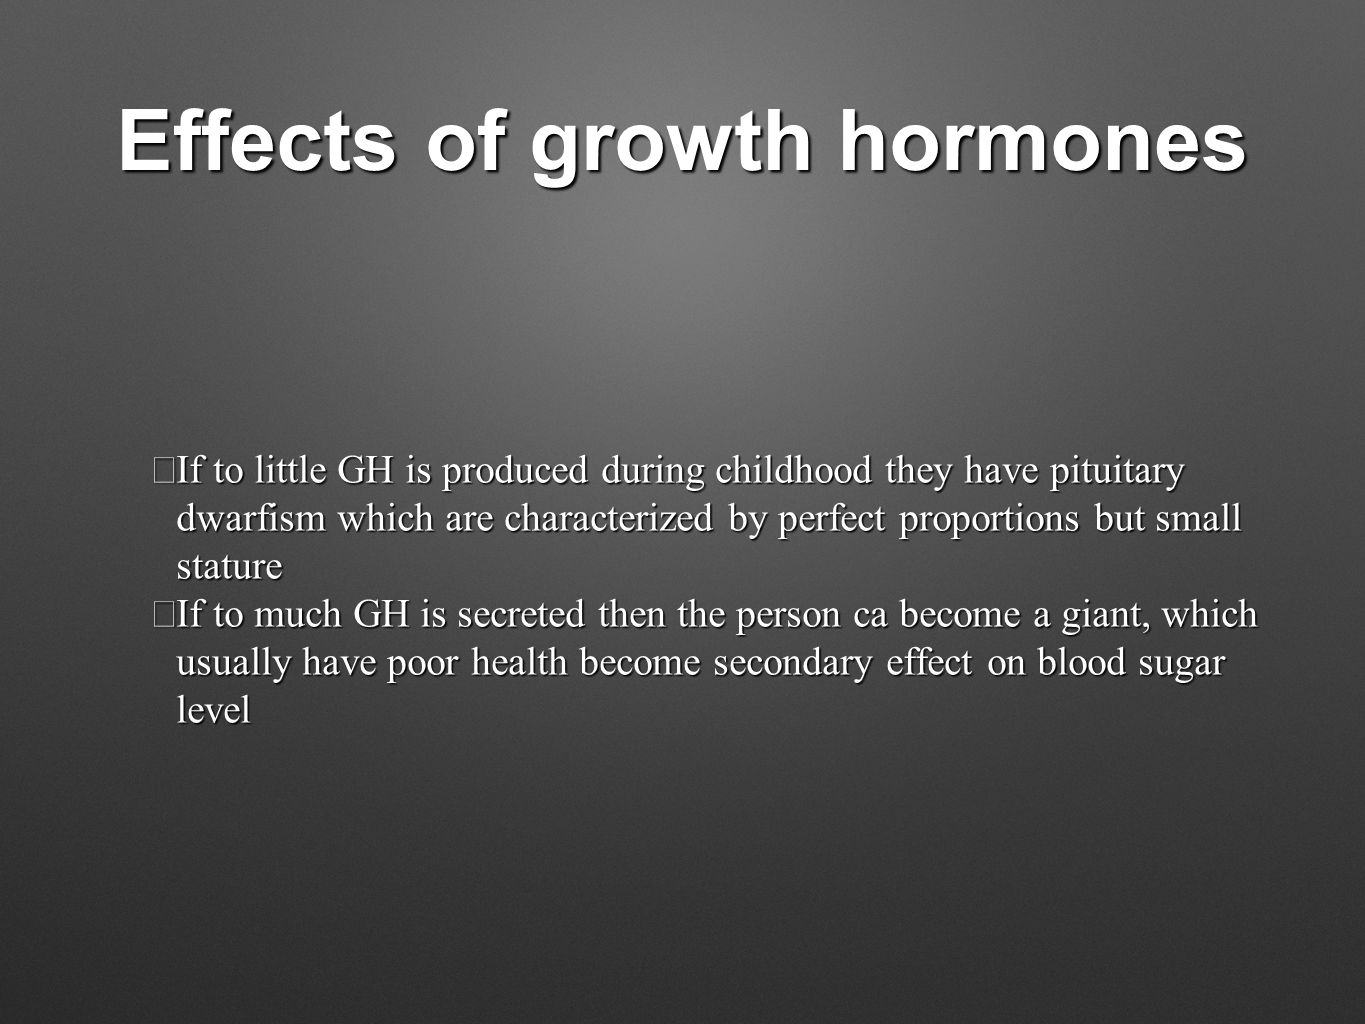 Effects of growth hormones